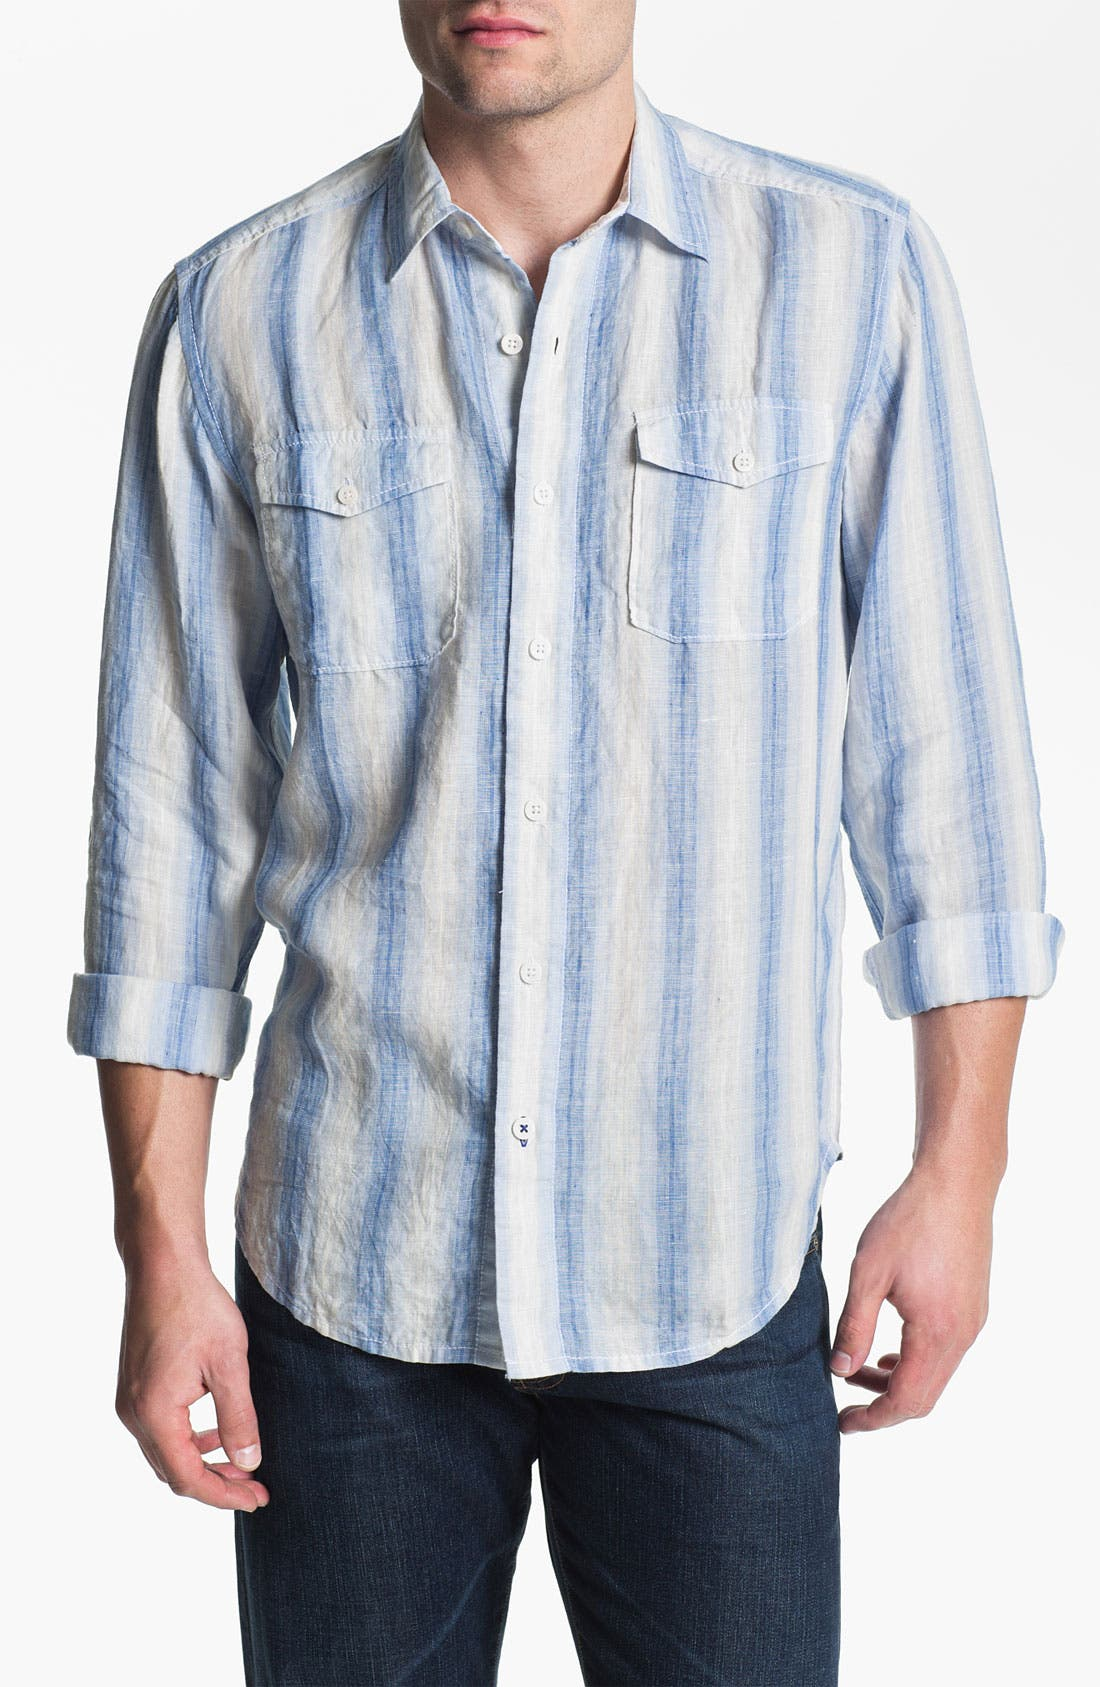 Alternate Image 1 Selected - Tommy Bahama 'Eastern Seaboard' Linen Sport Shirt (Big & Tall)